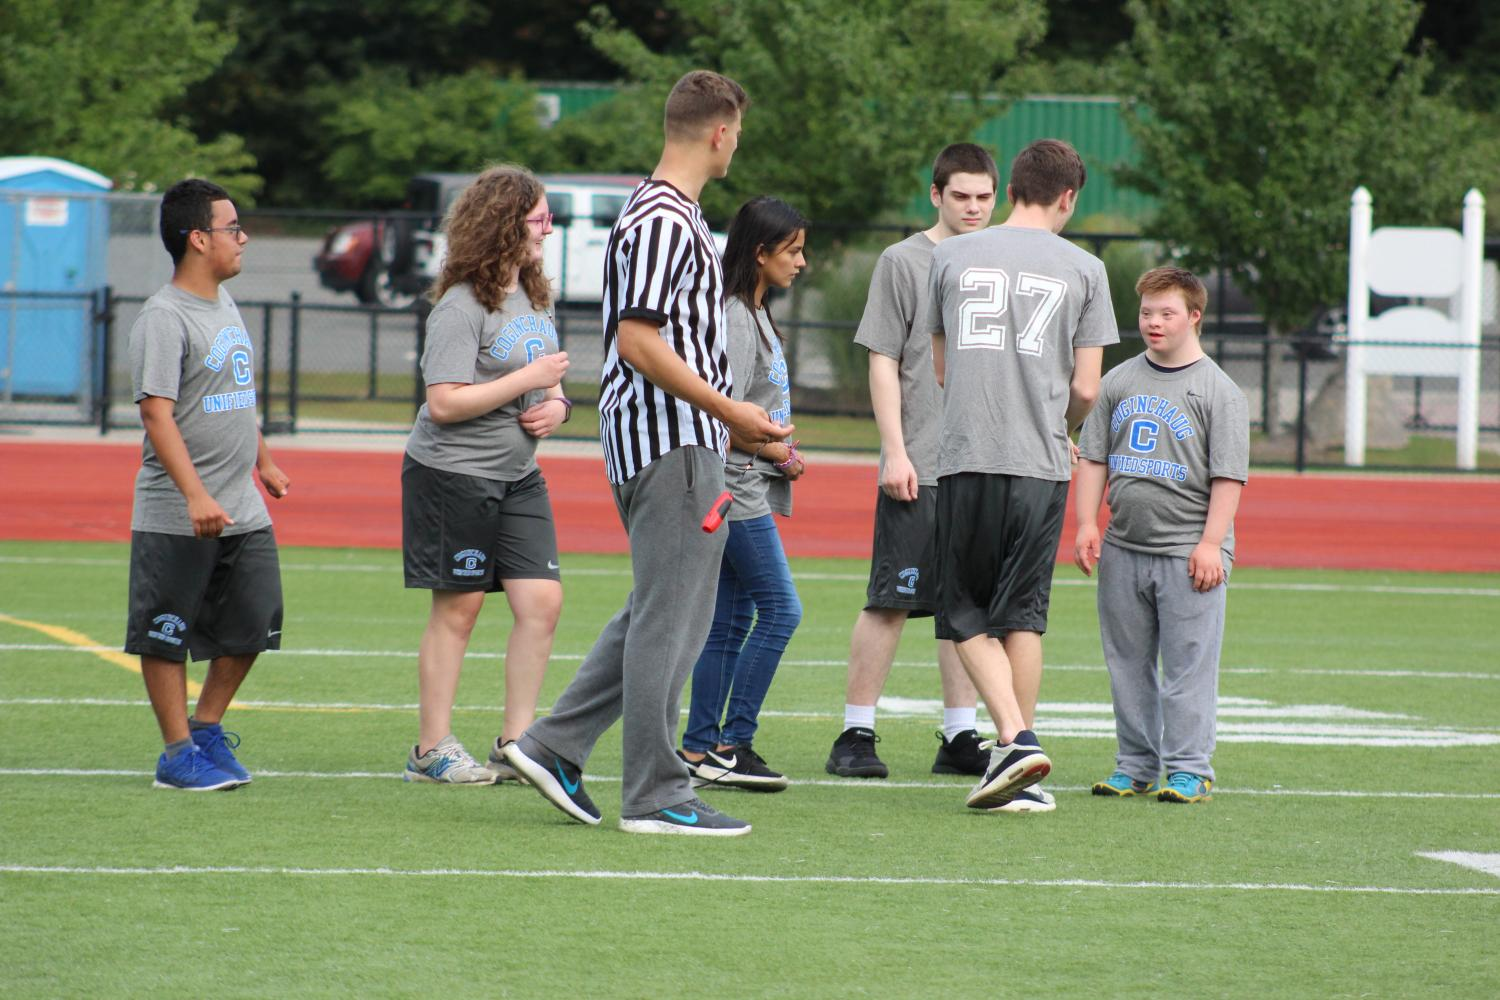 Unified Sports: Choose to Include